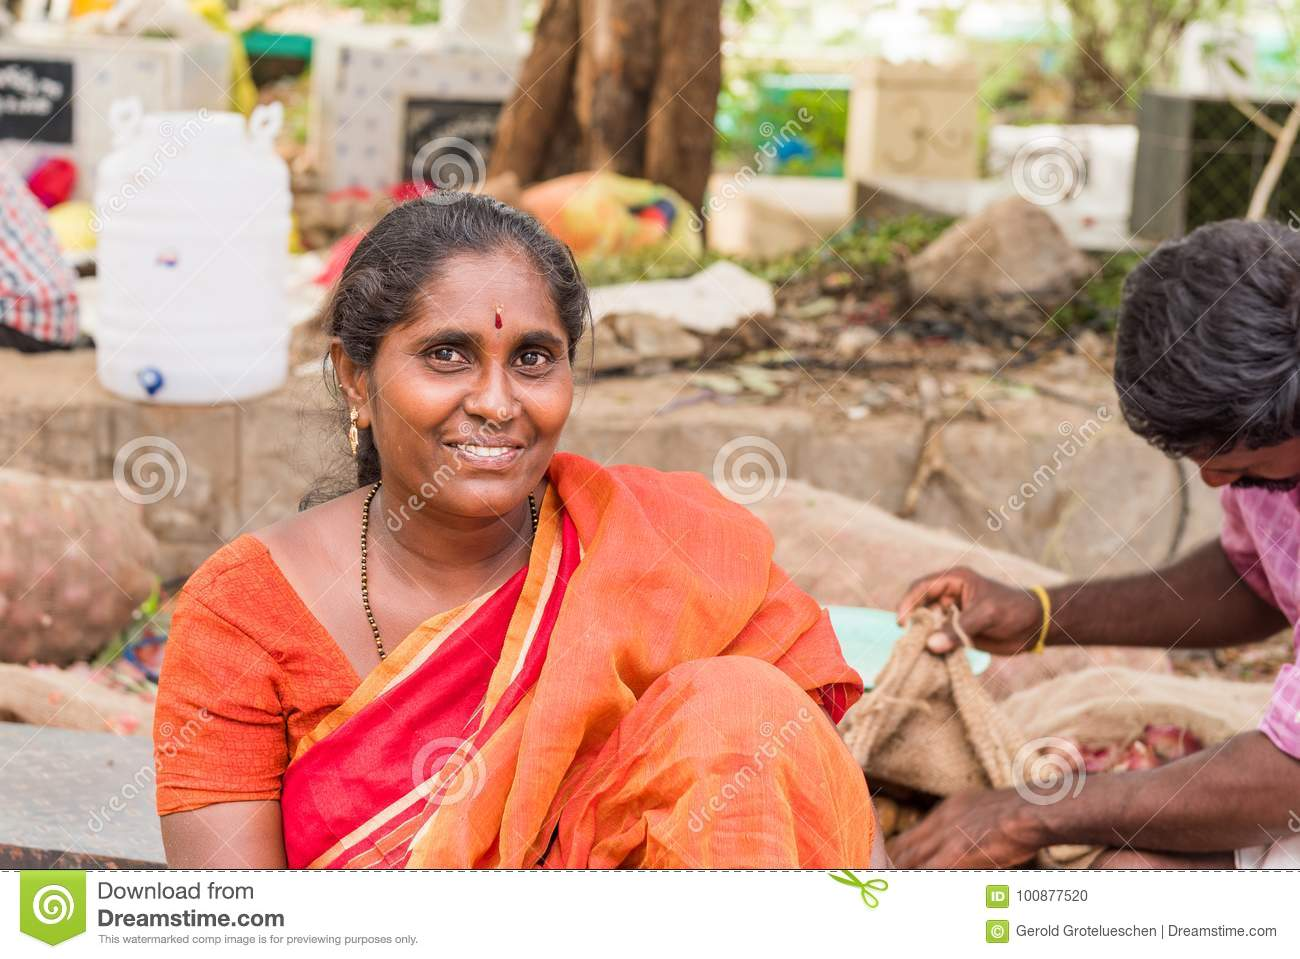 PUTTAPARTHI, ANDHRA PRADESH - INDIA - JULY 22, 2017: Portrait of an indian woman outdoors. Copy space for text.